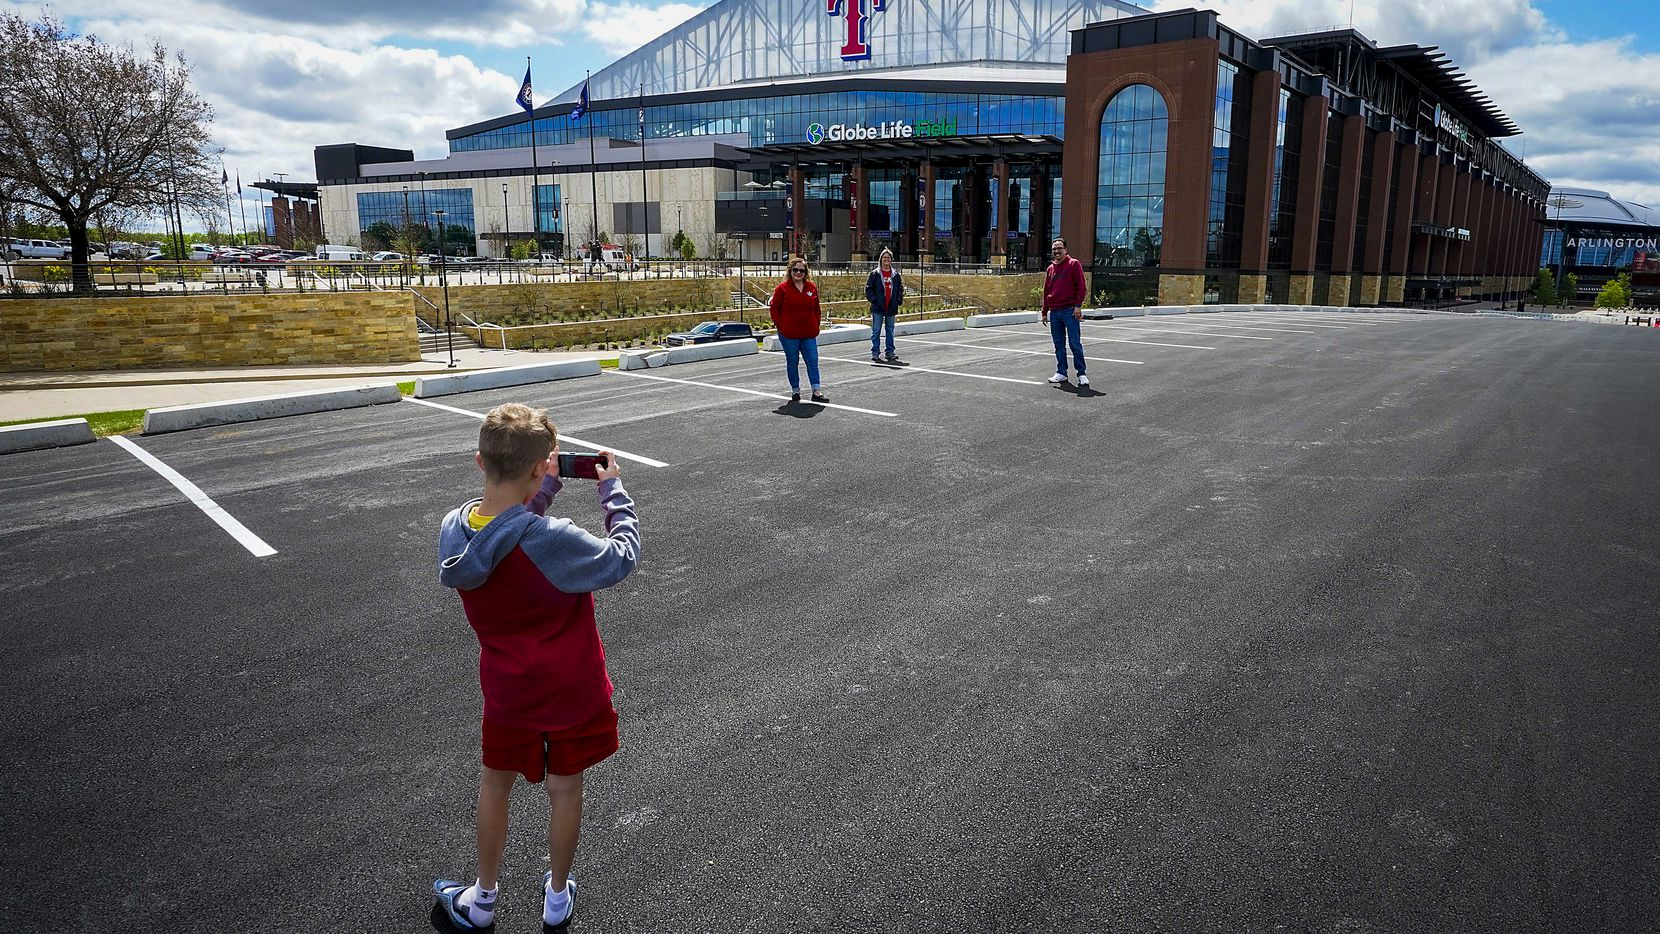 Adam Haney takes a picture of his grandmother Cheryl Springe (center) and her fellow Texas Rangers seasonal employees Eunice de la Barcena (left) and Chris Molina as they gather in the parking lot at Globe Life Field just before what would have been first pitch at the stadium on Tuesday, March 31, 2020, in Arlington, before the season was postponed due to the new coronavirus.